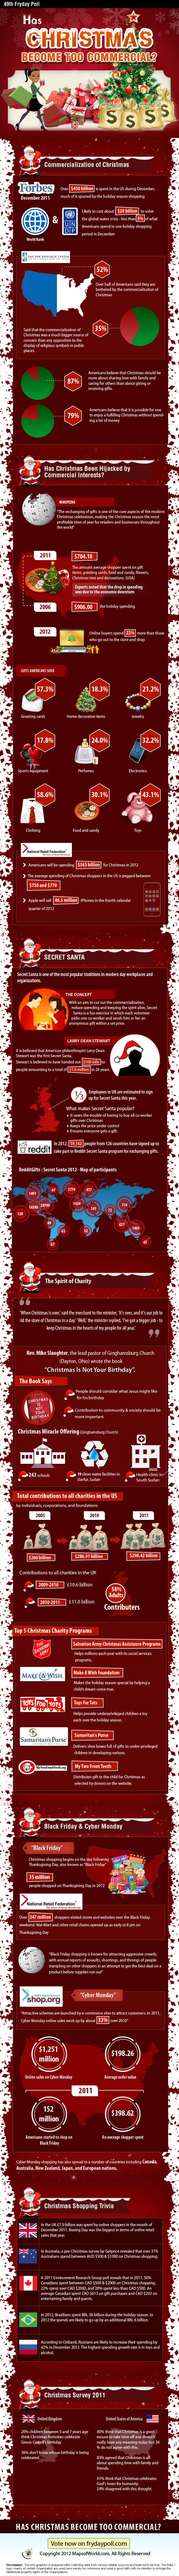 08 has-christmas-become-too-commercial-facts-infographic